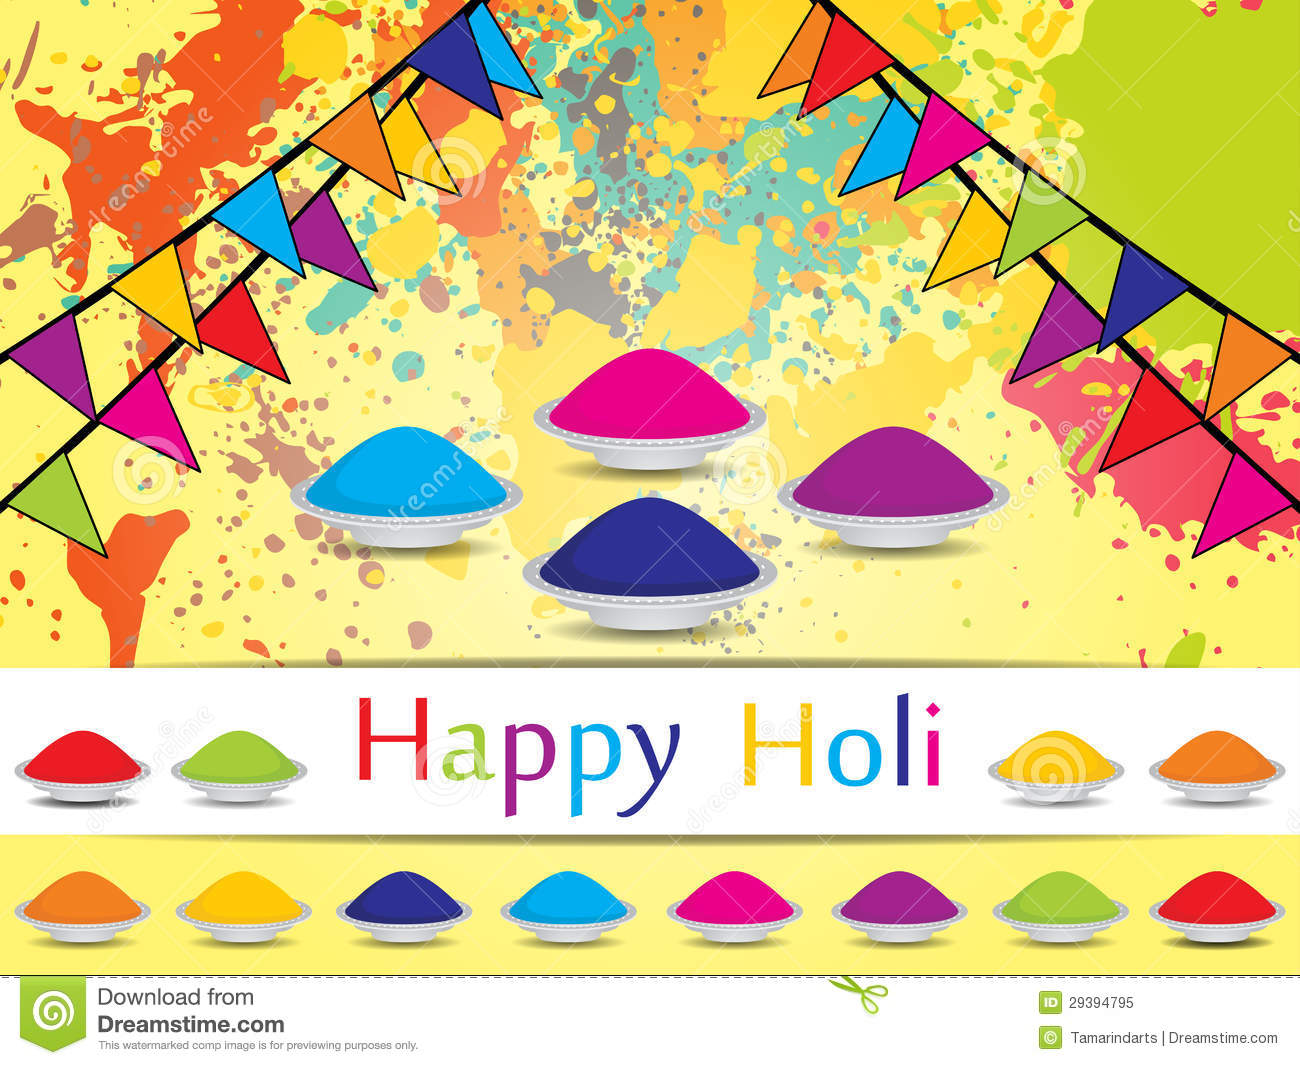 51+ Free Indian Festival Clipart.